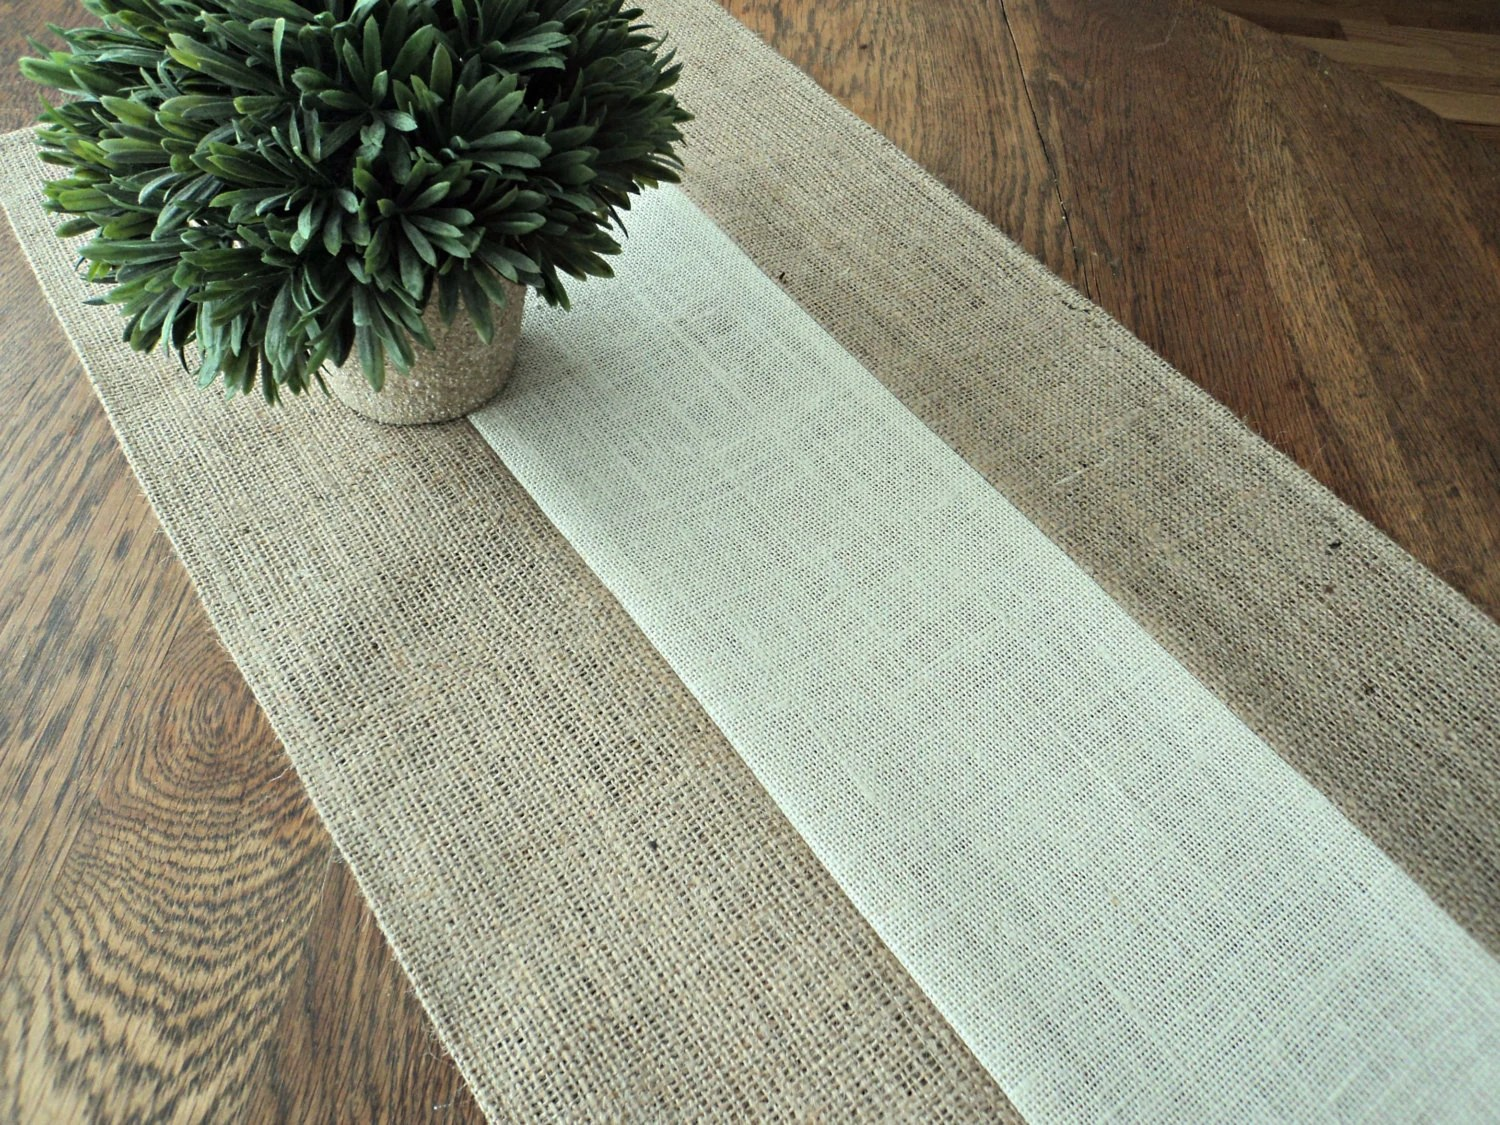 Farmhouse Style Table Runners Natural And Ivory Burlap Table Runner Holiday Table Runner